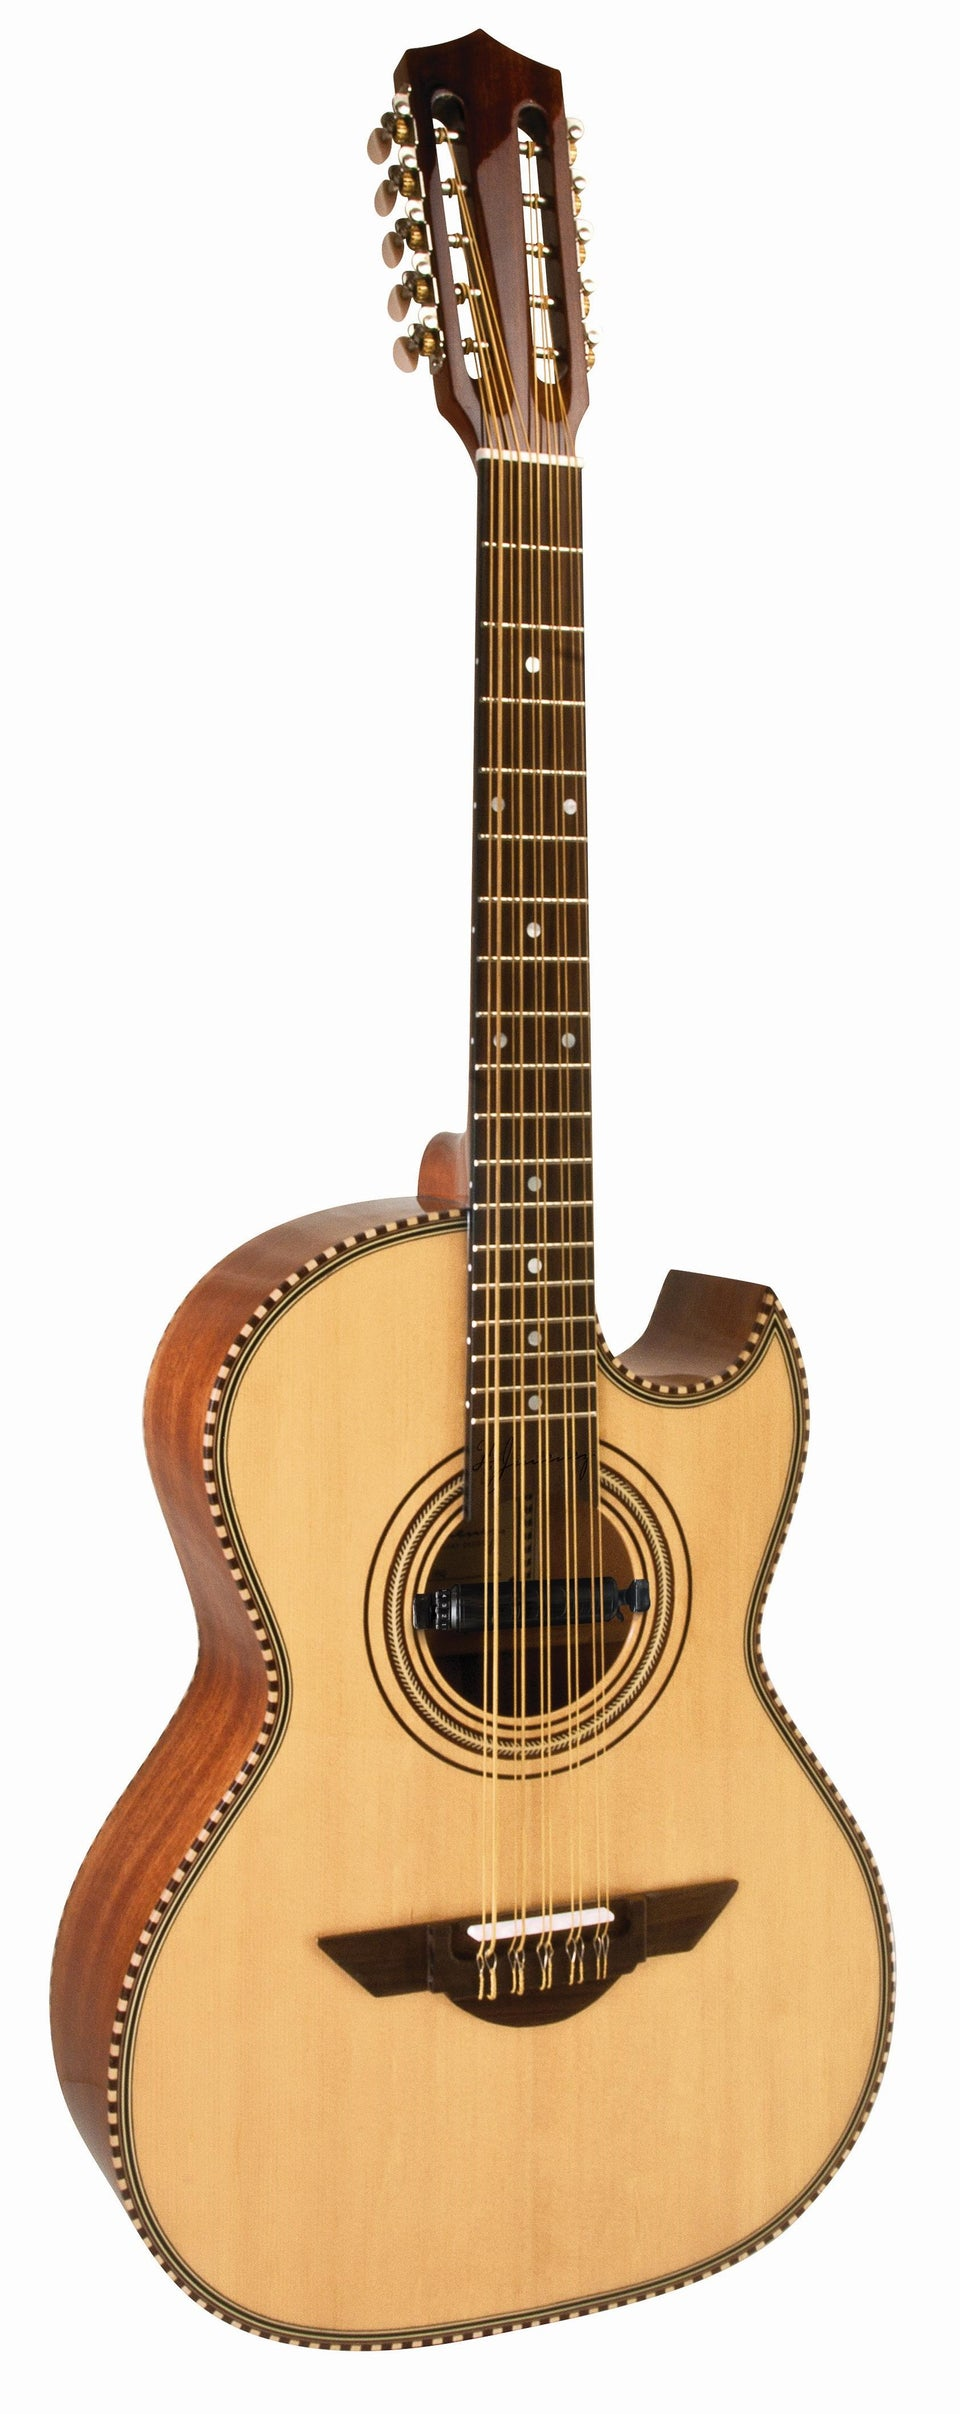 H. Jimenez El Estandar LBQ1E Natural Acoustic/Electric Bajo Quinto